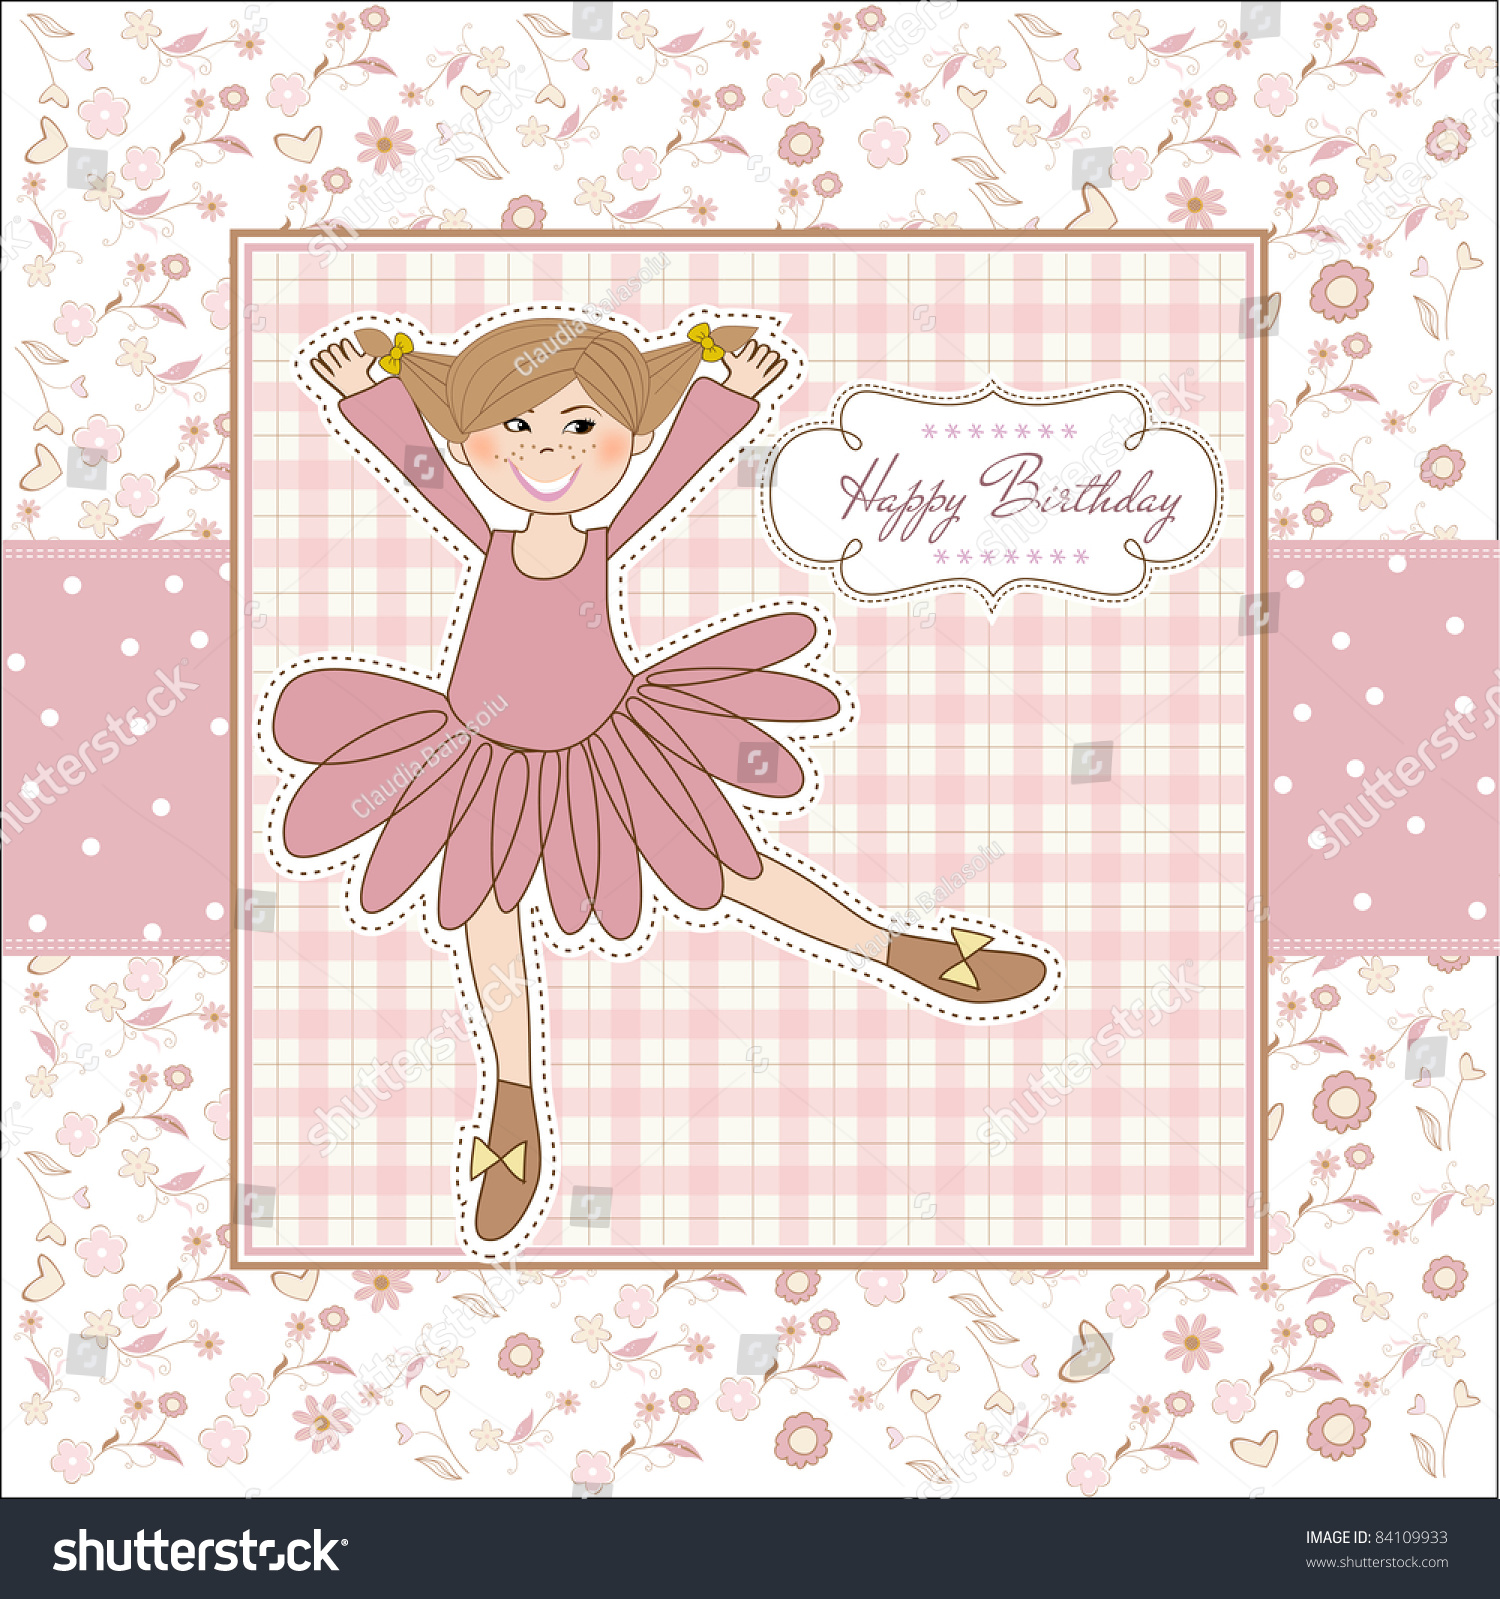 Girl Birthday Card Image collections Free Birthday Cards